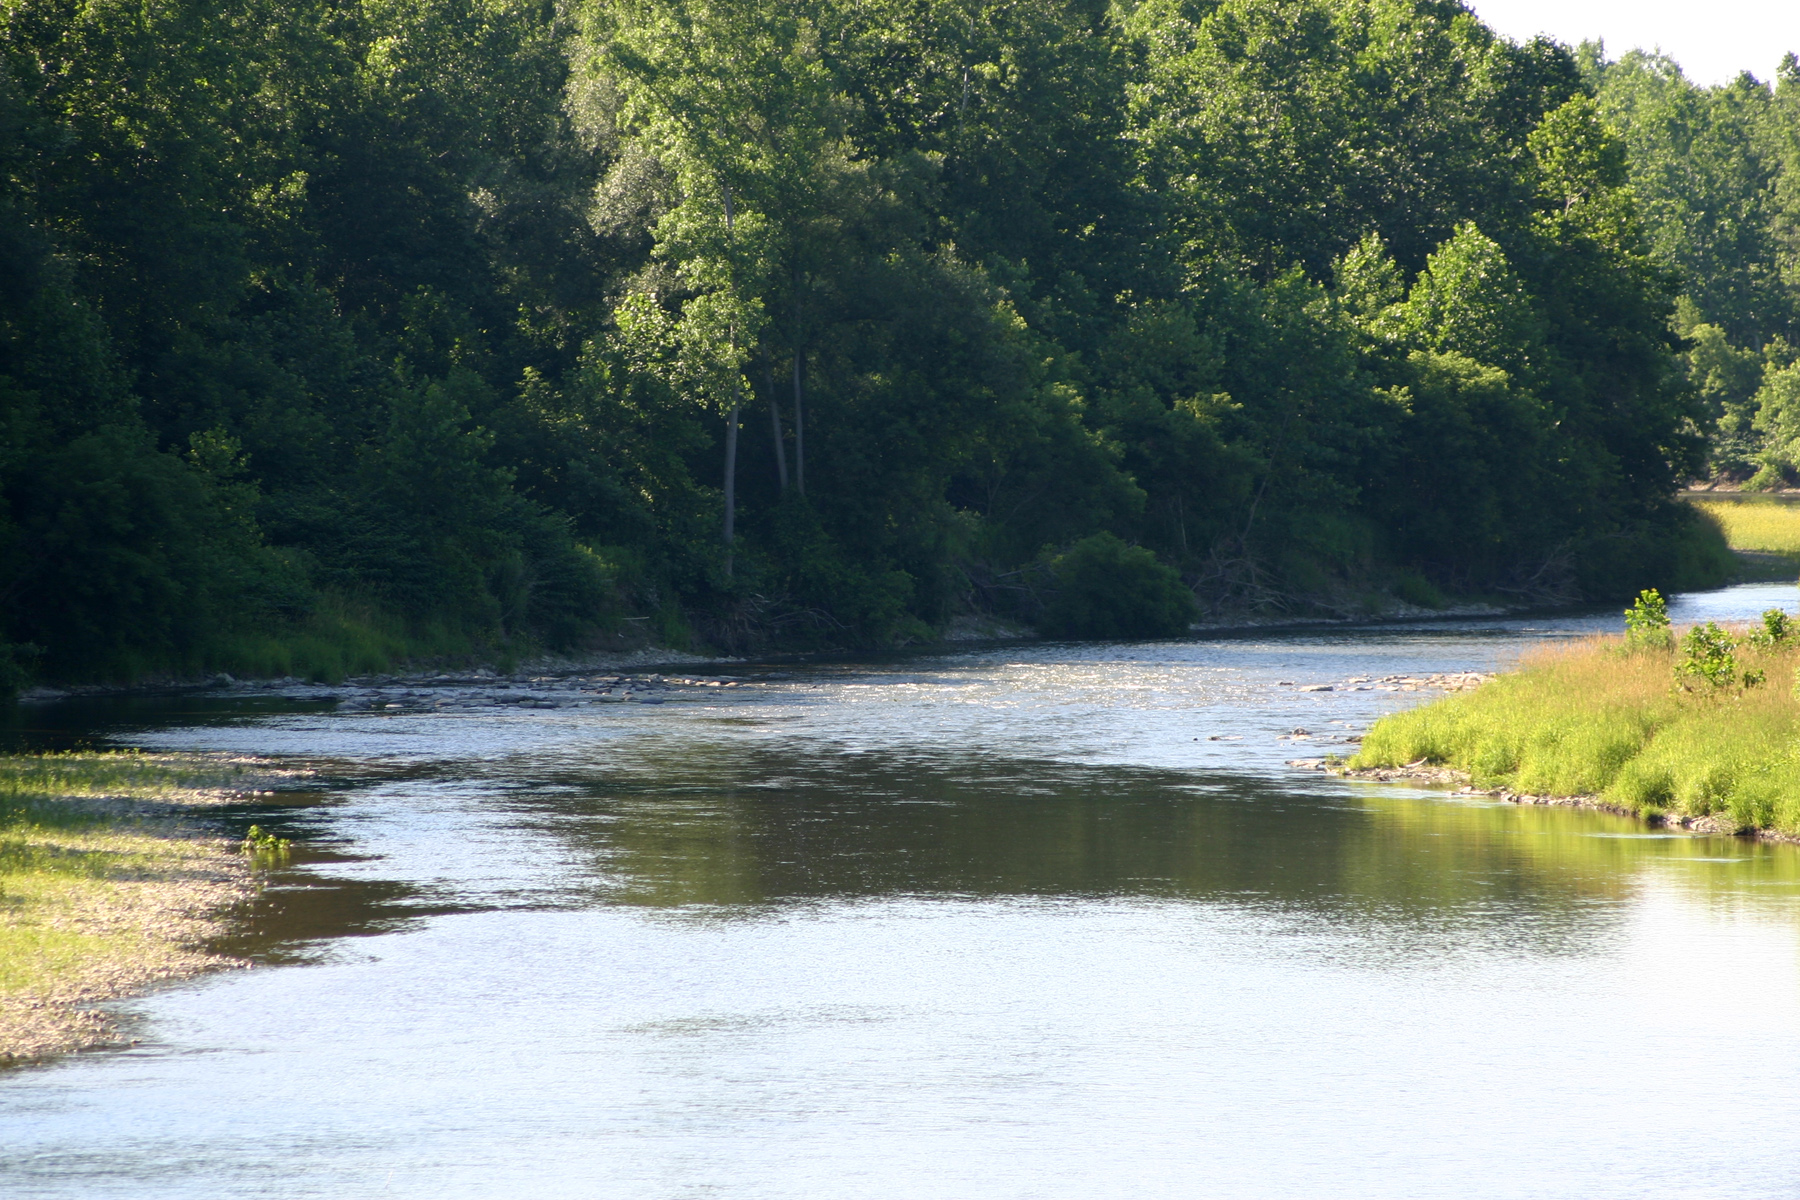 view of a western New York state river, typical of where Hellbender salamanders might be found